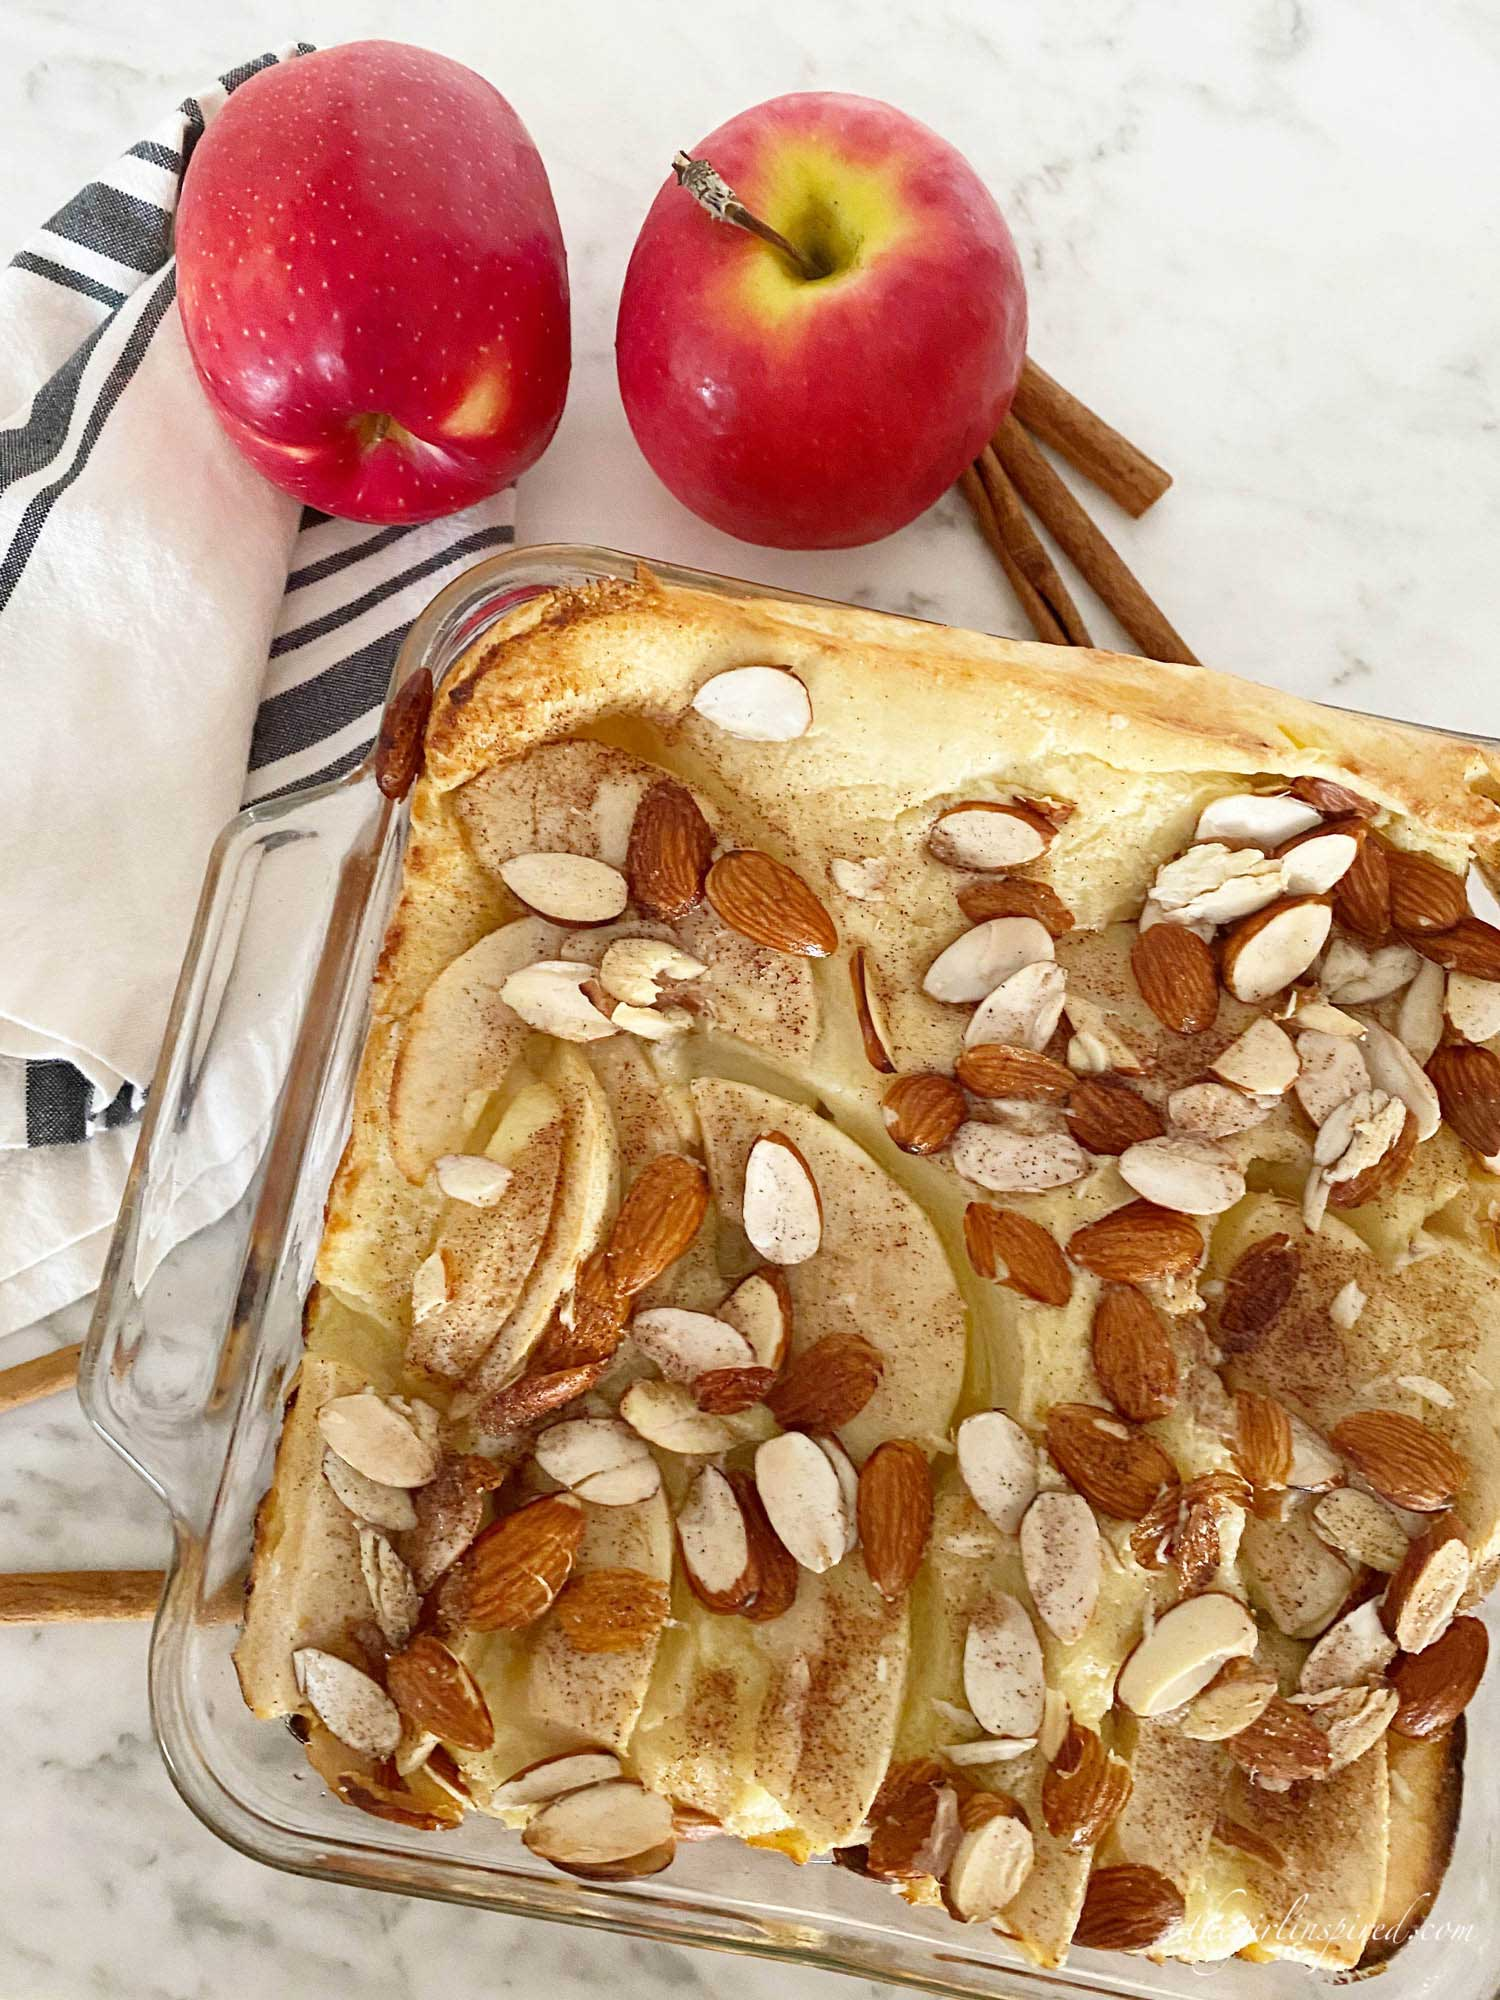 German pancake with red apples, sliced almonds